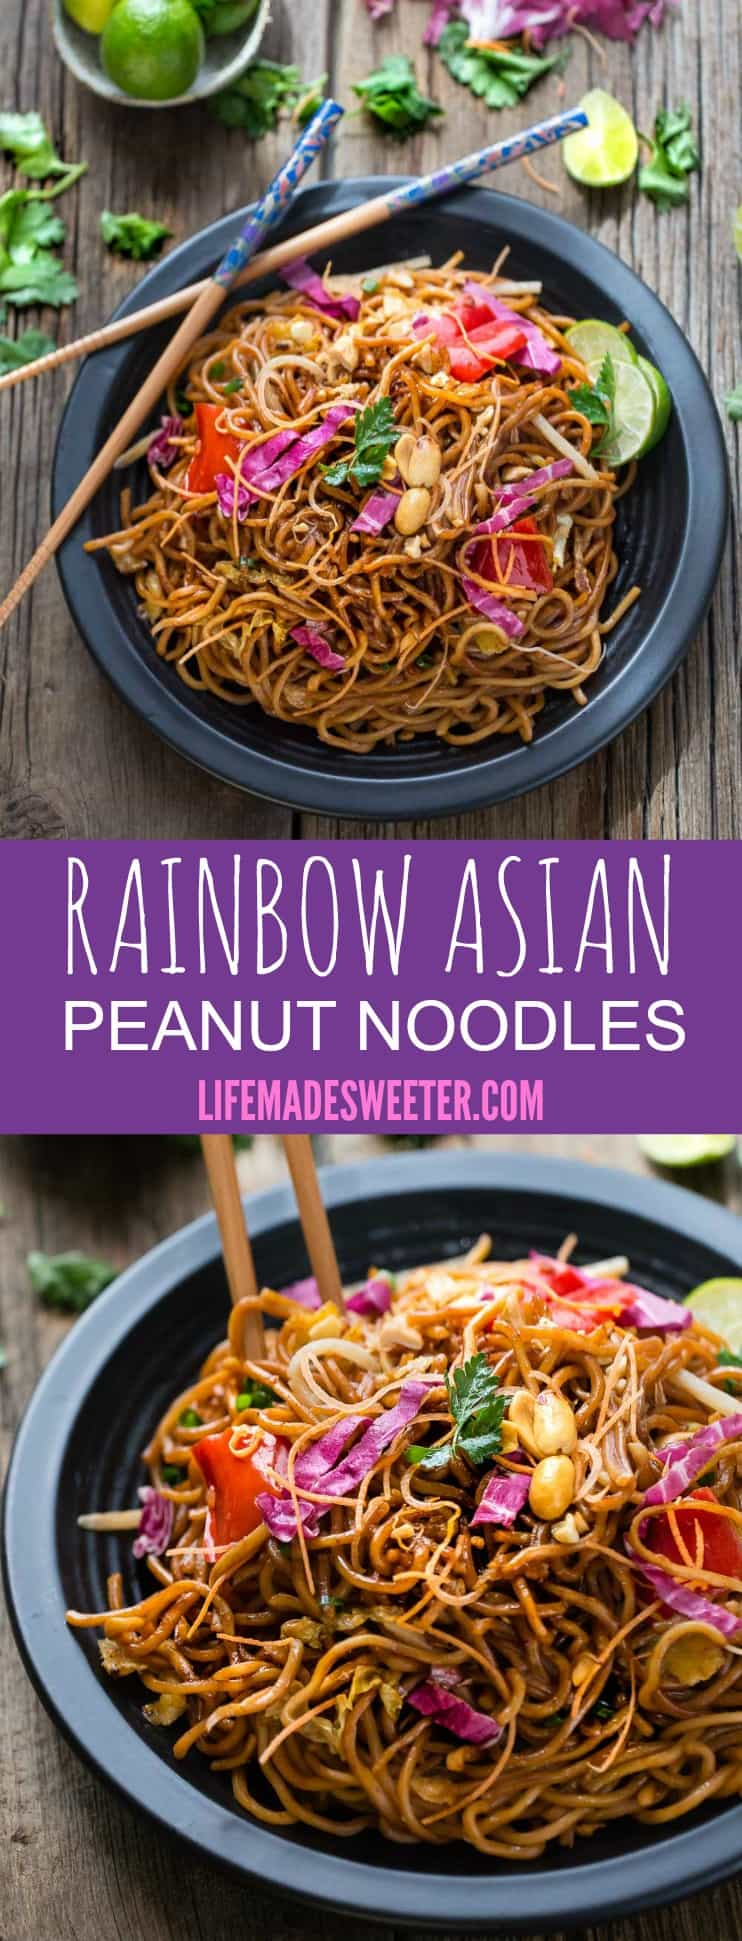 Rainbow Asian Peanut Noodles makes the perfect easy weeknight meal taking less than 30 minutes to make!